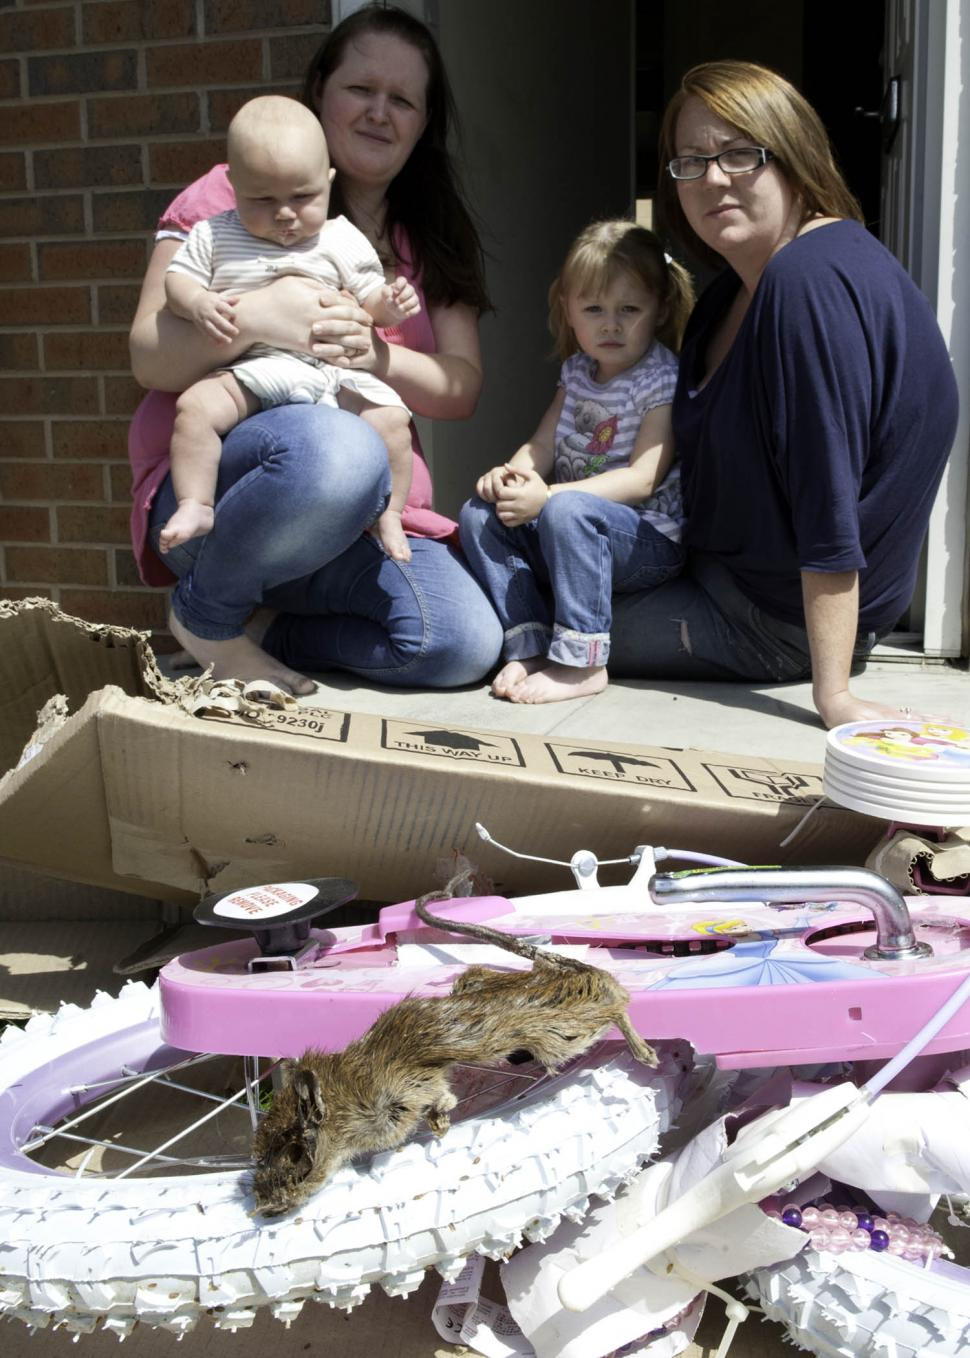 Lindsey Rhodes with her son Malakai daughter Mia godmother Lauren Ingle and the decomposed rat found dead in the packaging pic courtesy The Star.JPG